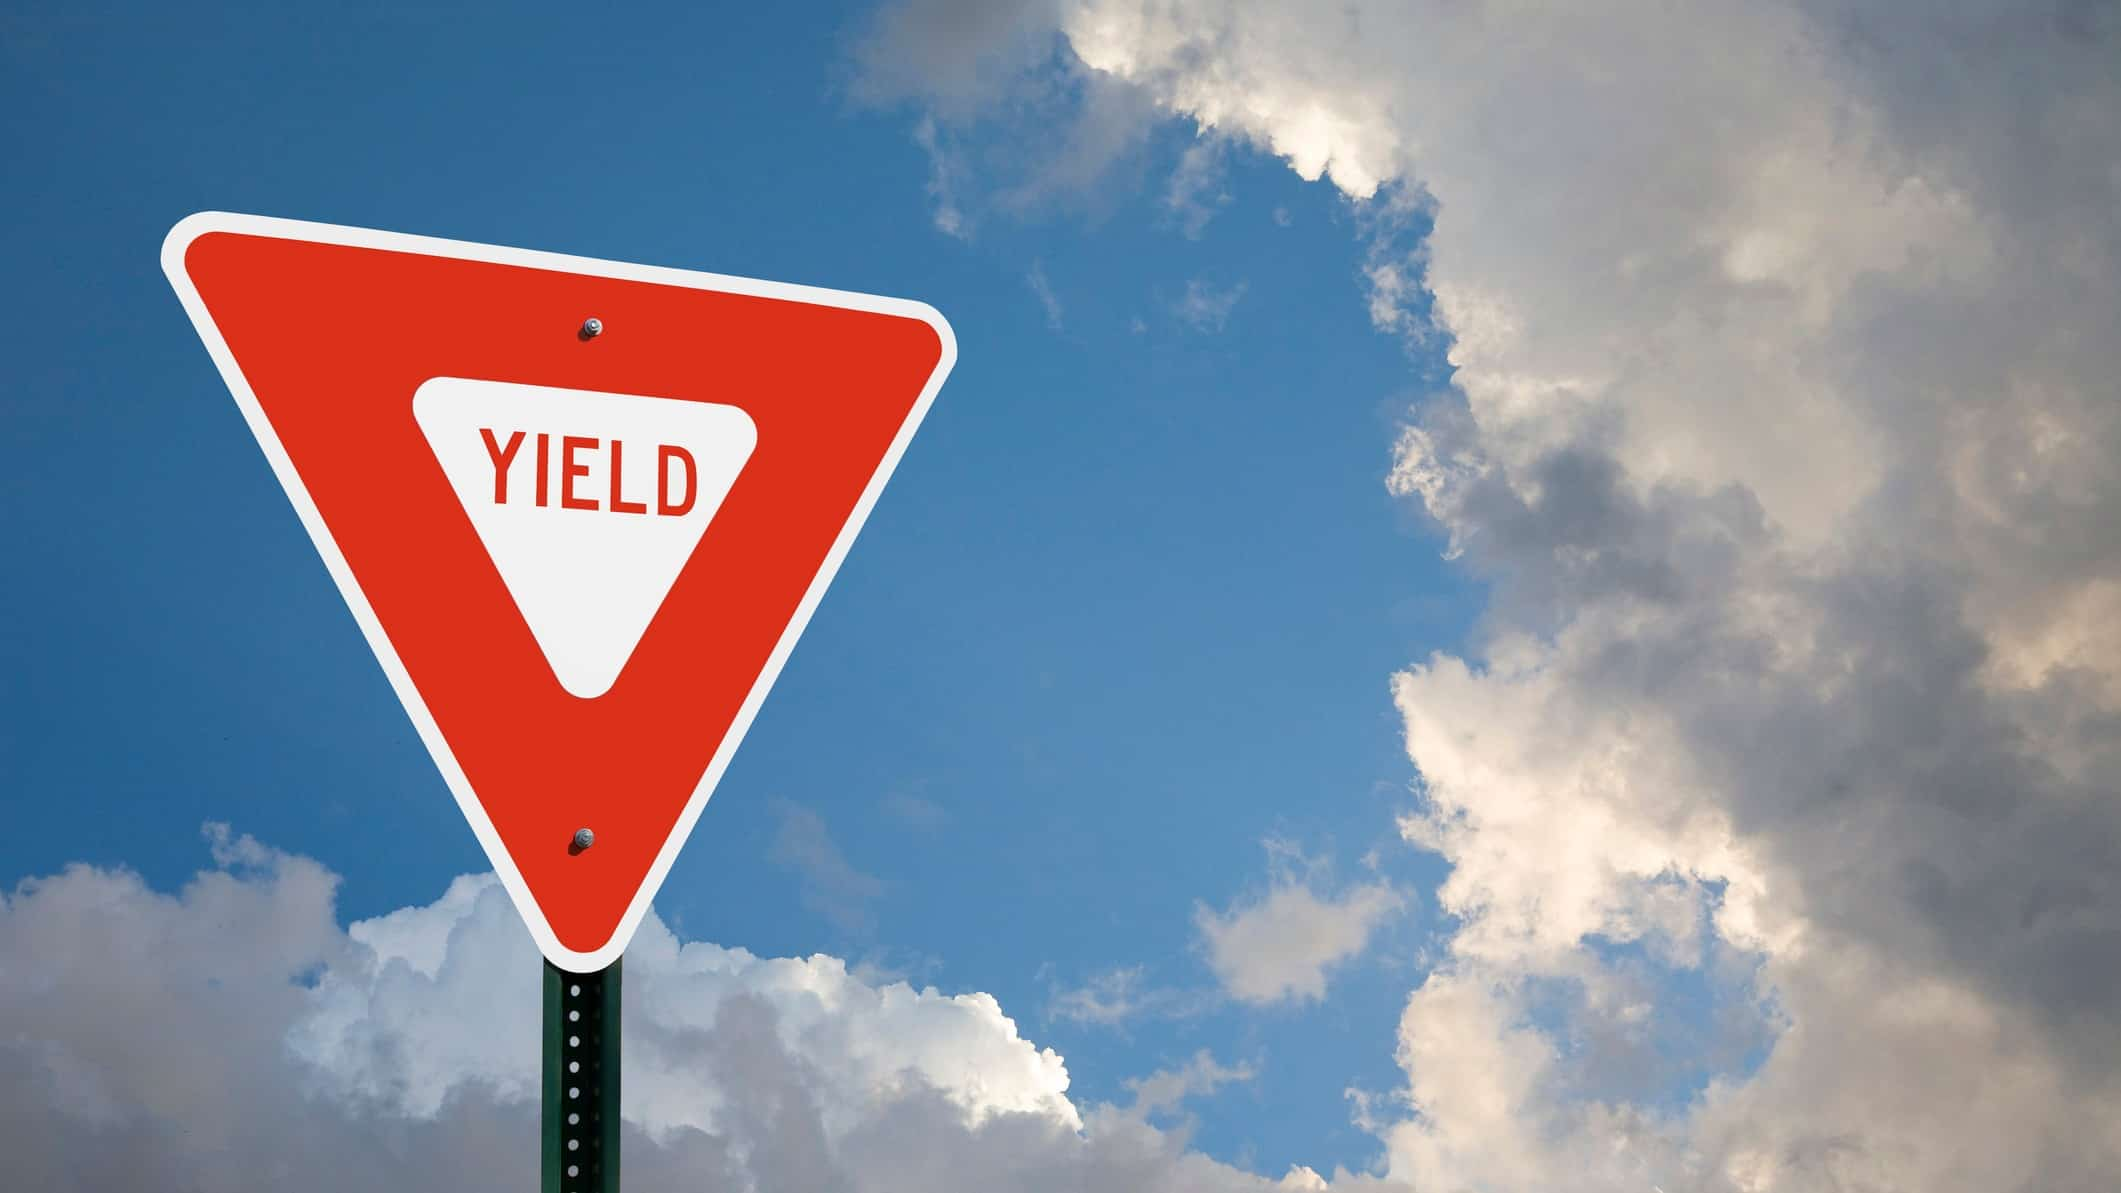 asx shares dividend yield represented by street sign saying the word yield.